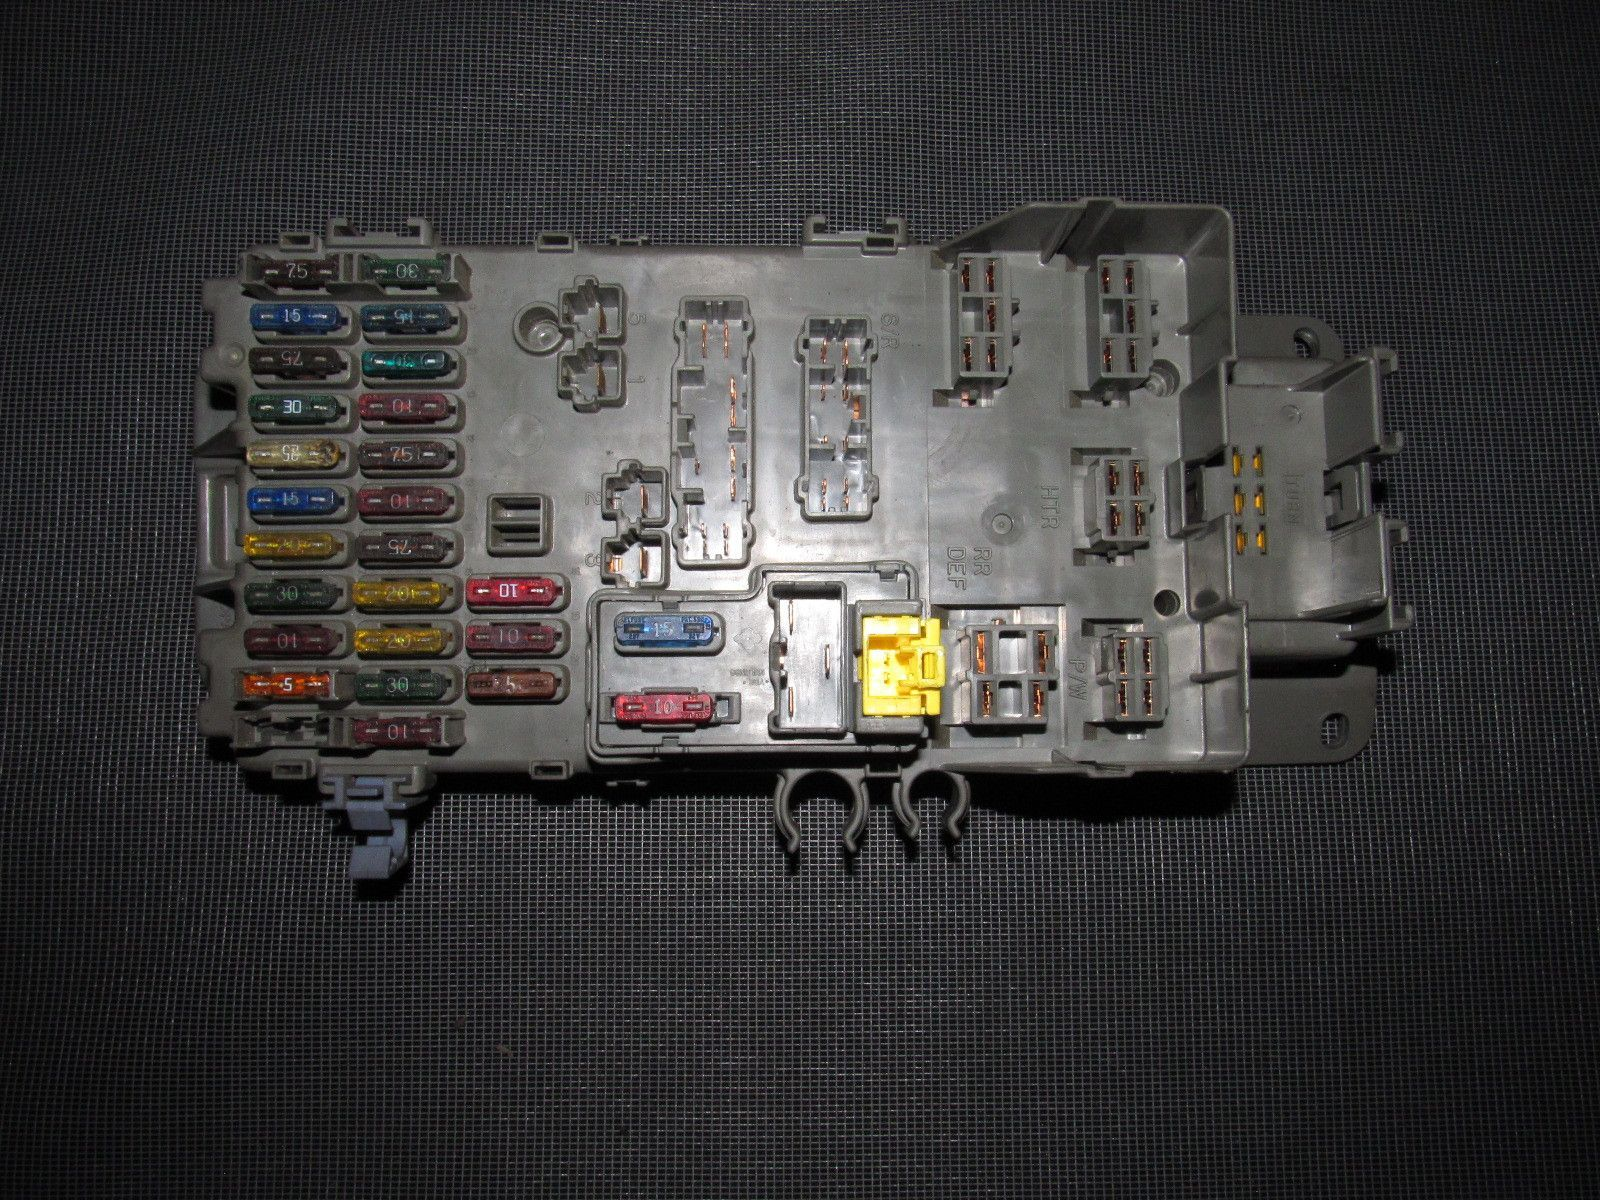 94 95 Fuse Box - All Diagram Schematics  Fuse Box on